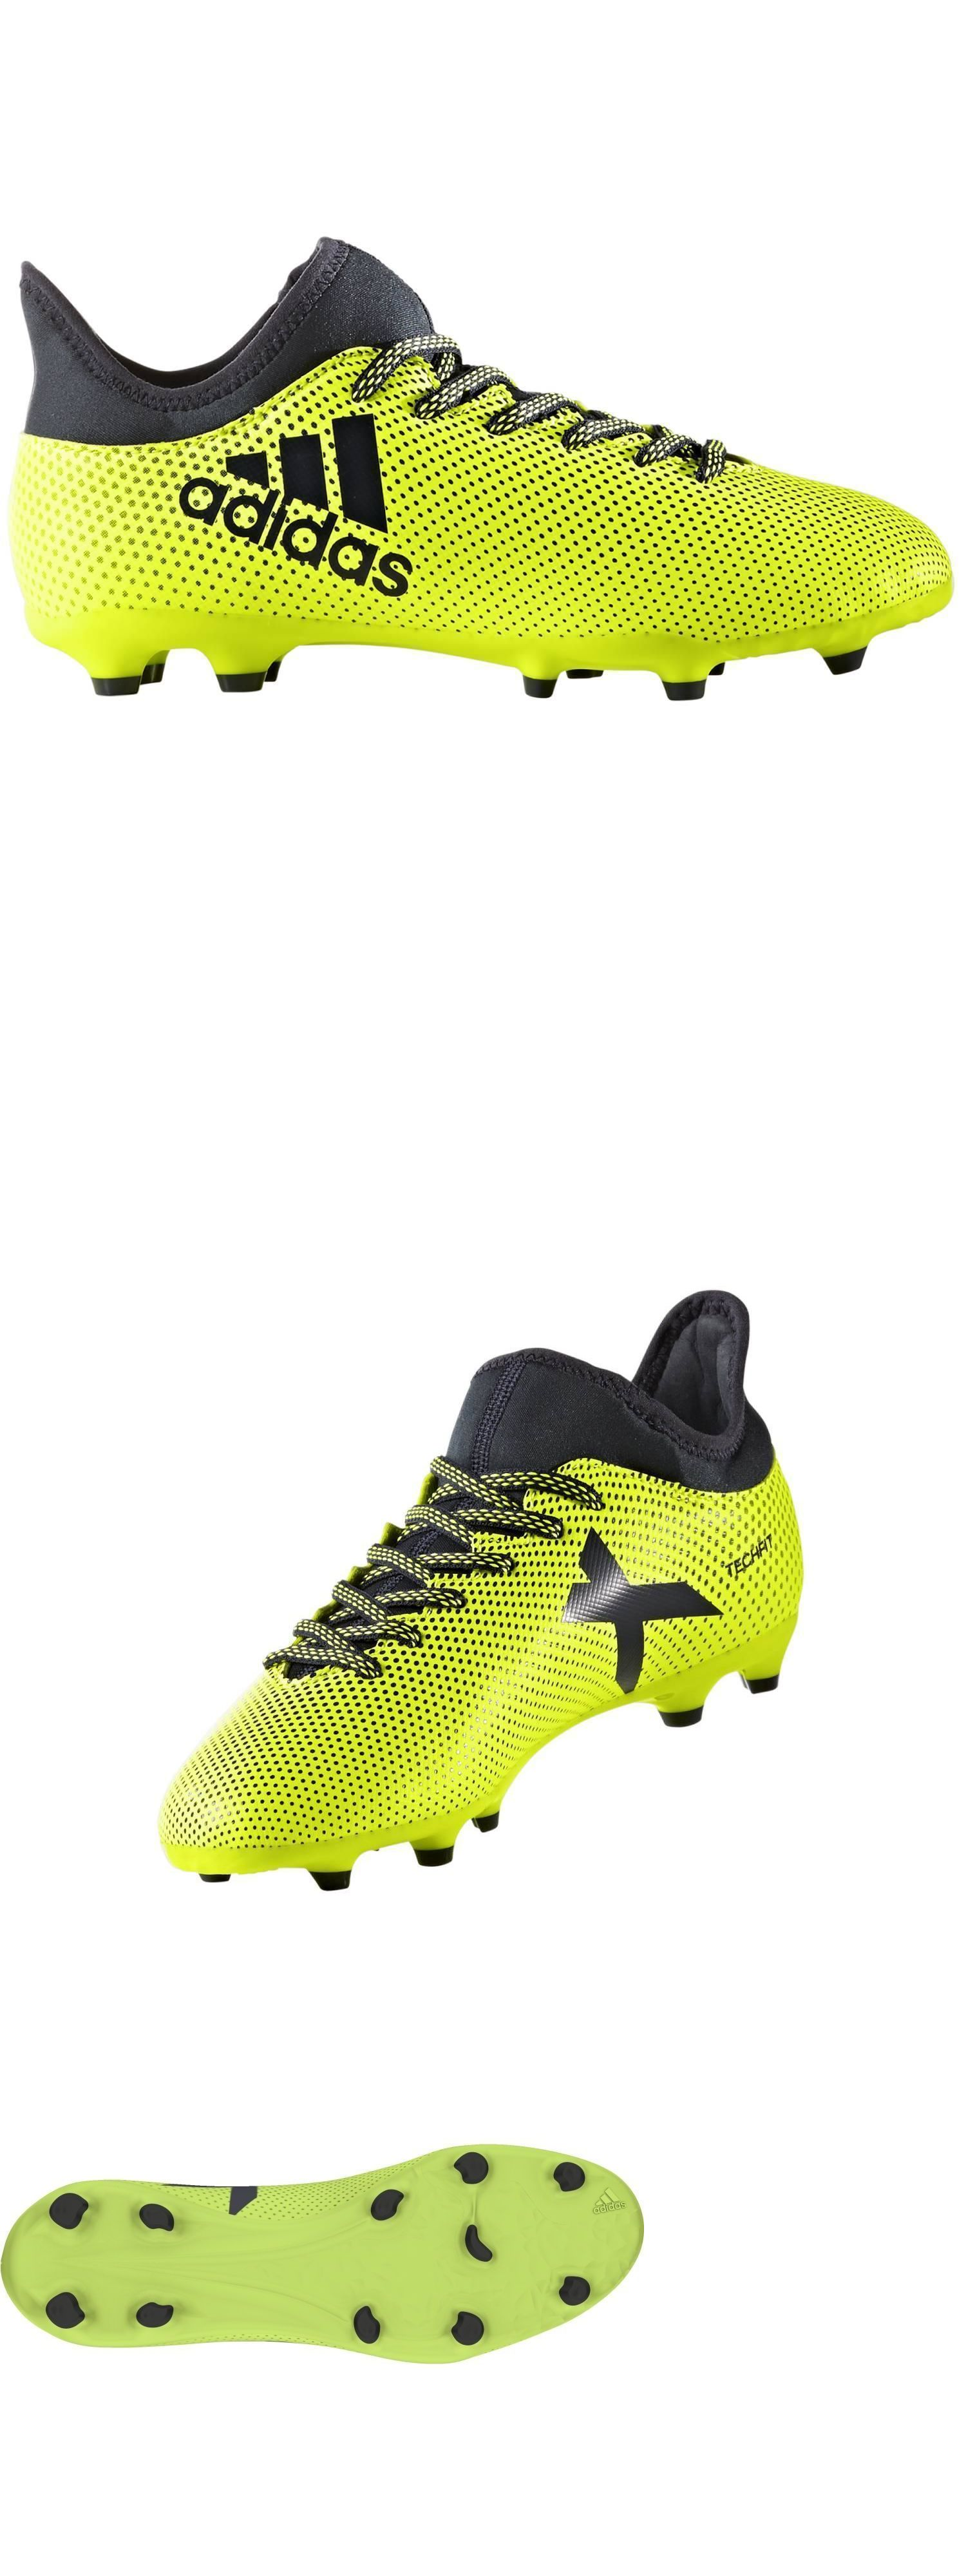 ... release date a676f 034f3 Youth 159177 Adidas Jr X 17.3 Fg Yellow Black  Soccer Cleats S82369 ... 46cae07633b6